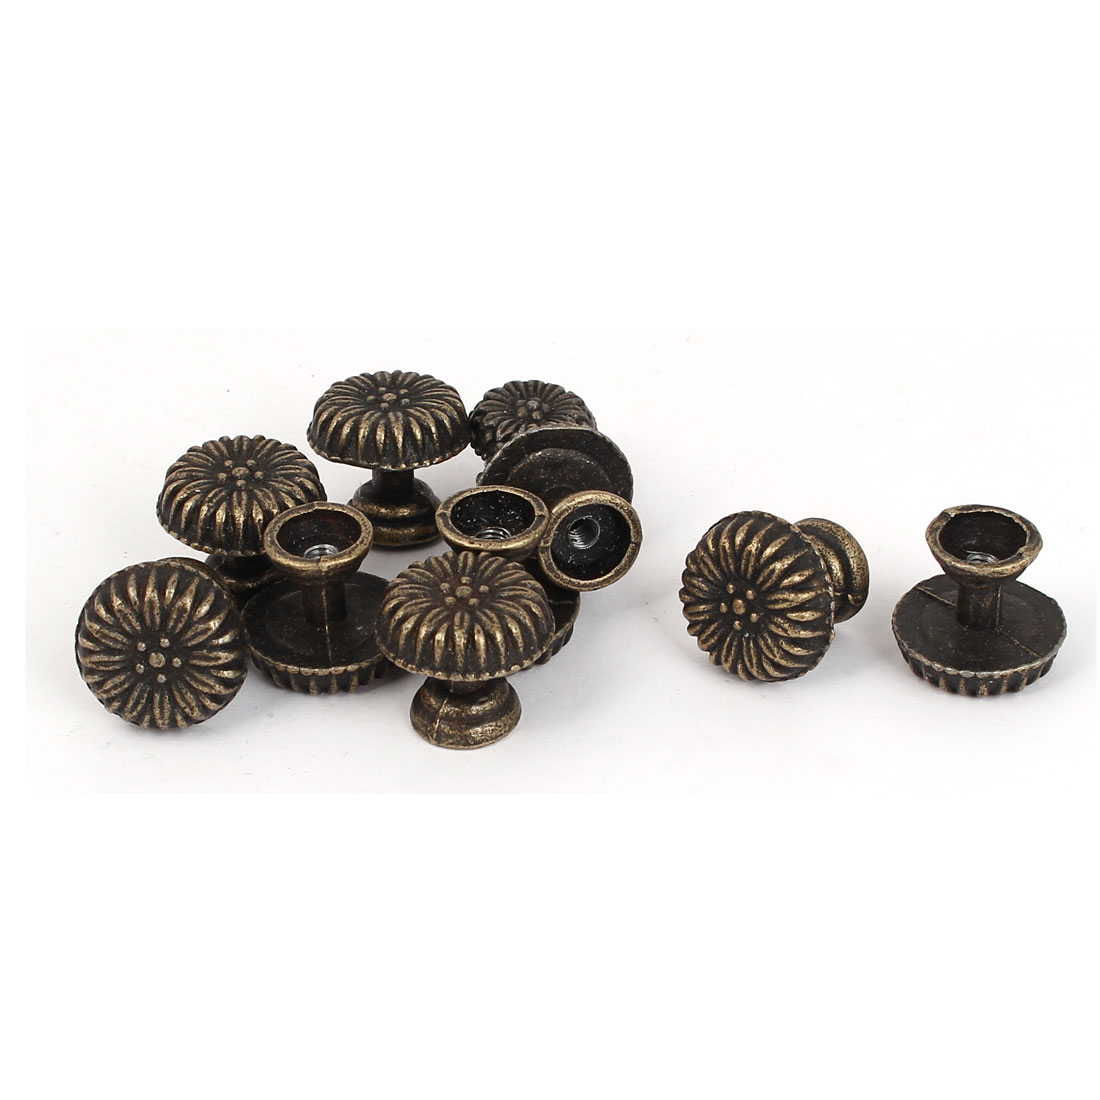 Cupboard Drawer Closet Round Metal Door Pull Handle Knob Grip Bronze Tone 10pcs